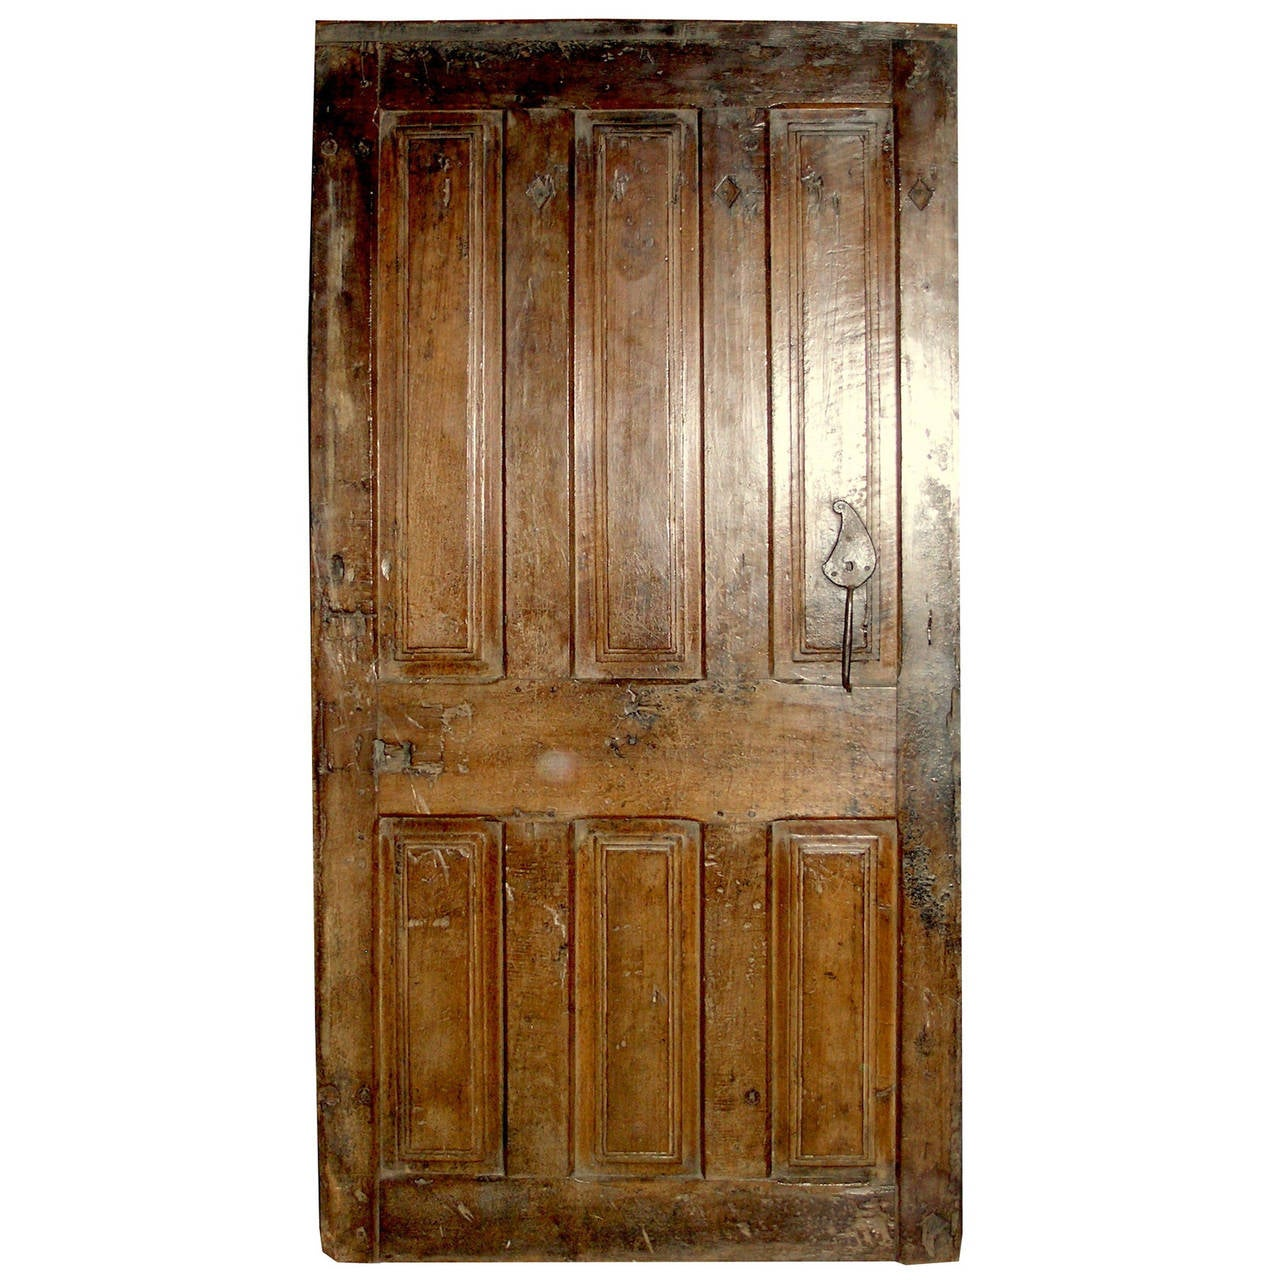 1280 #6F431A Antique Walnut Entry Door For Sale At 1stdibs save image Vintage Exterior Doors 41071280